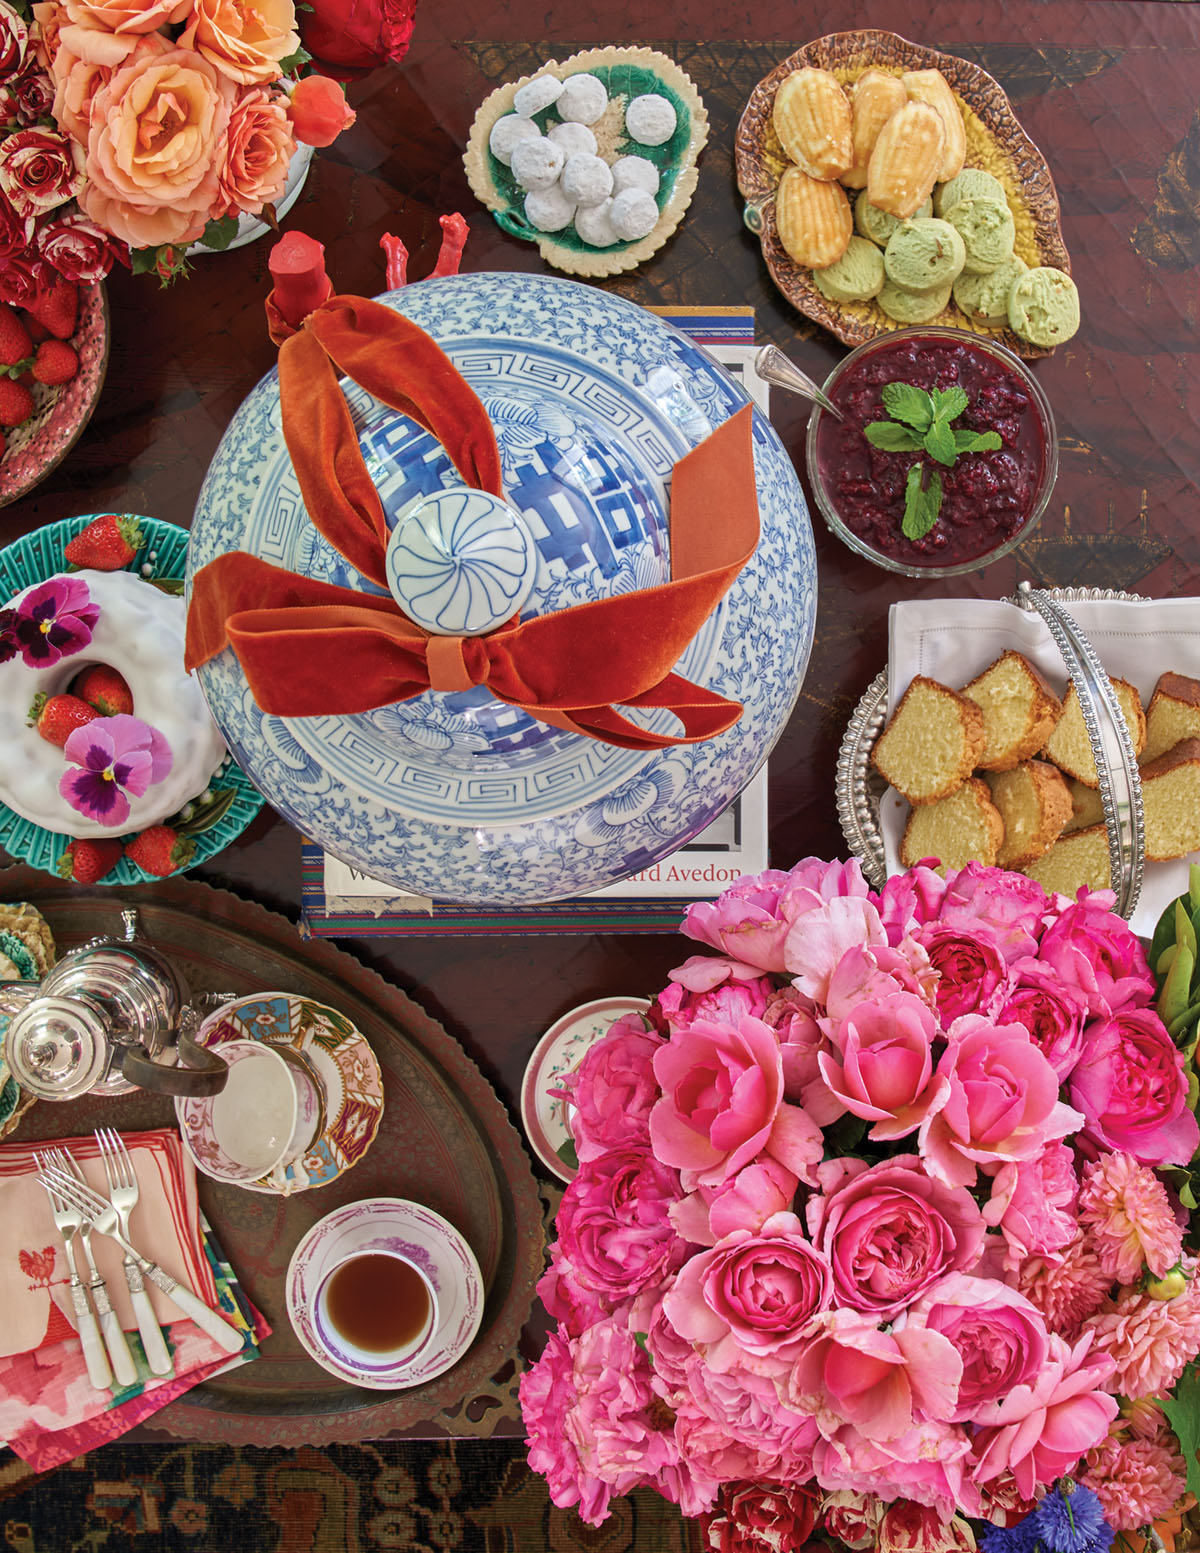 overhead view of the dessert table, including a bouquet of pink roses and a lidded blue-and-white chinoiserie jar